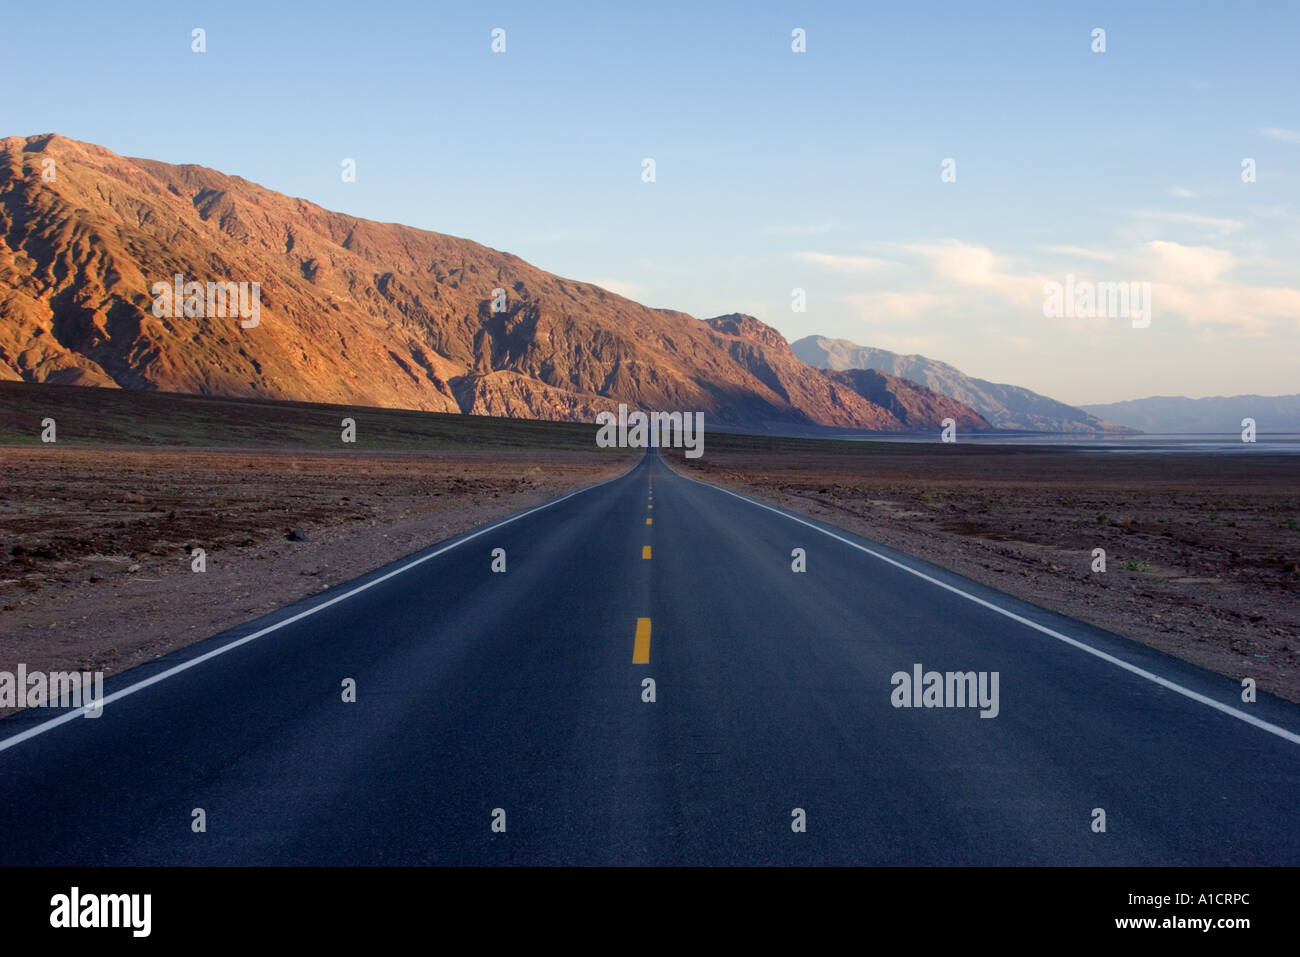 Long stretch of desert road in Death Valley National Park California United States of America Stock Photo